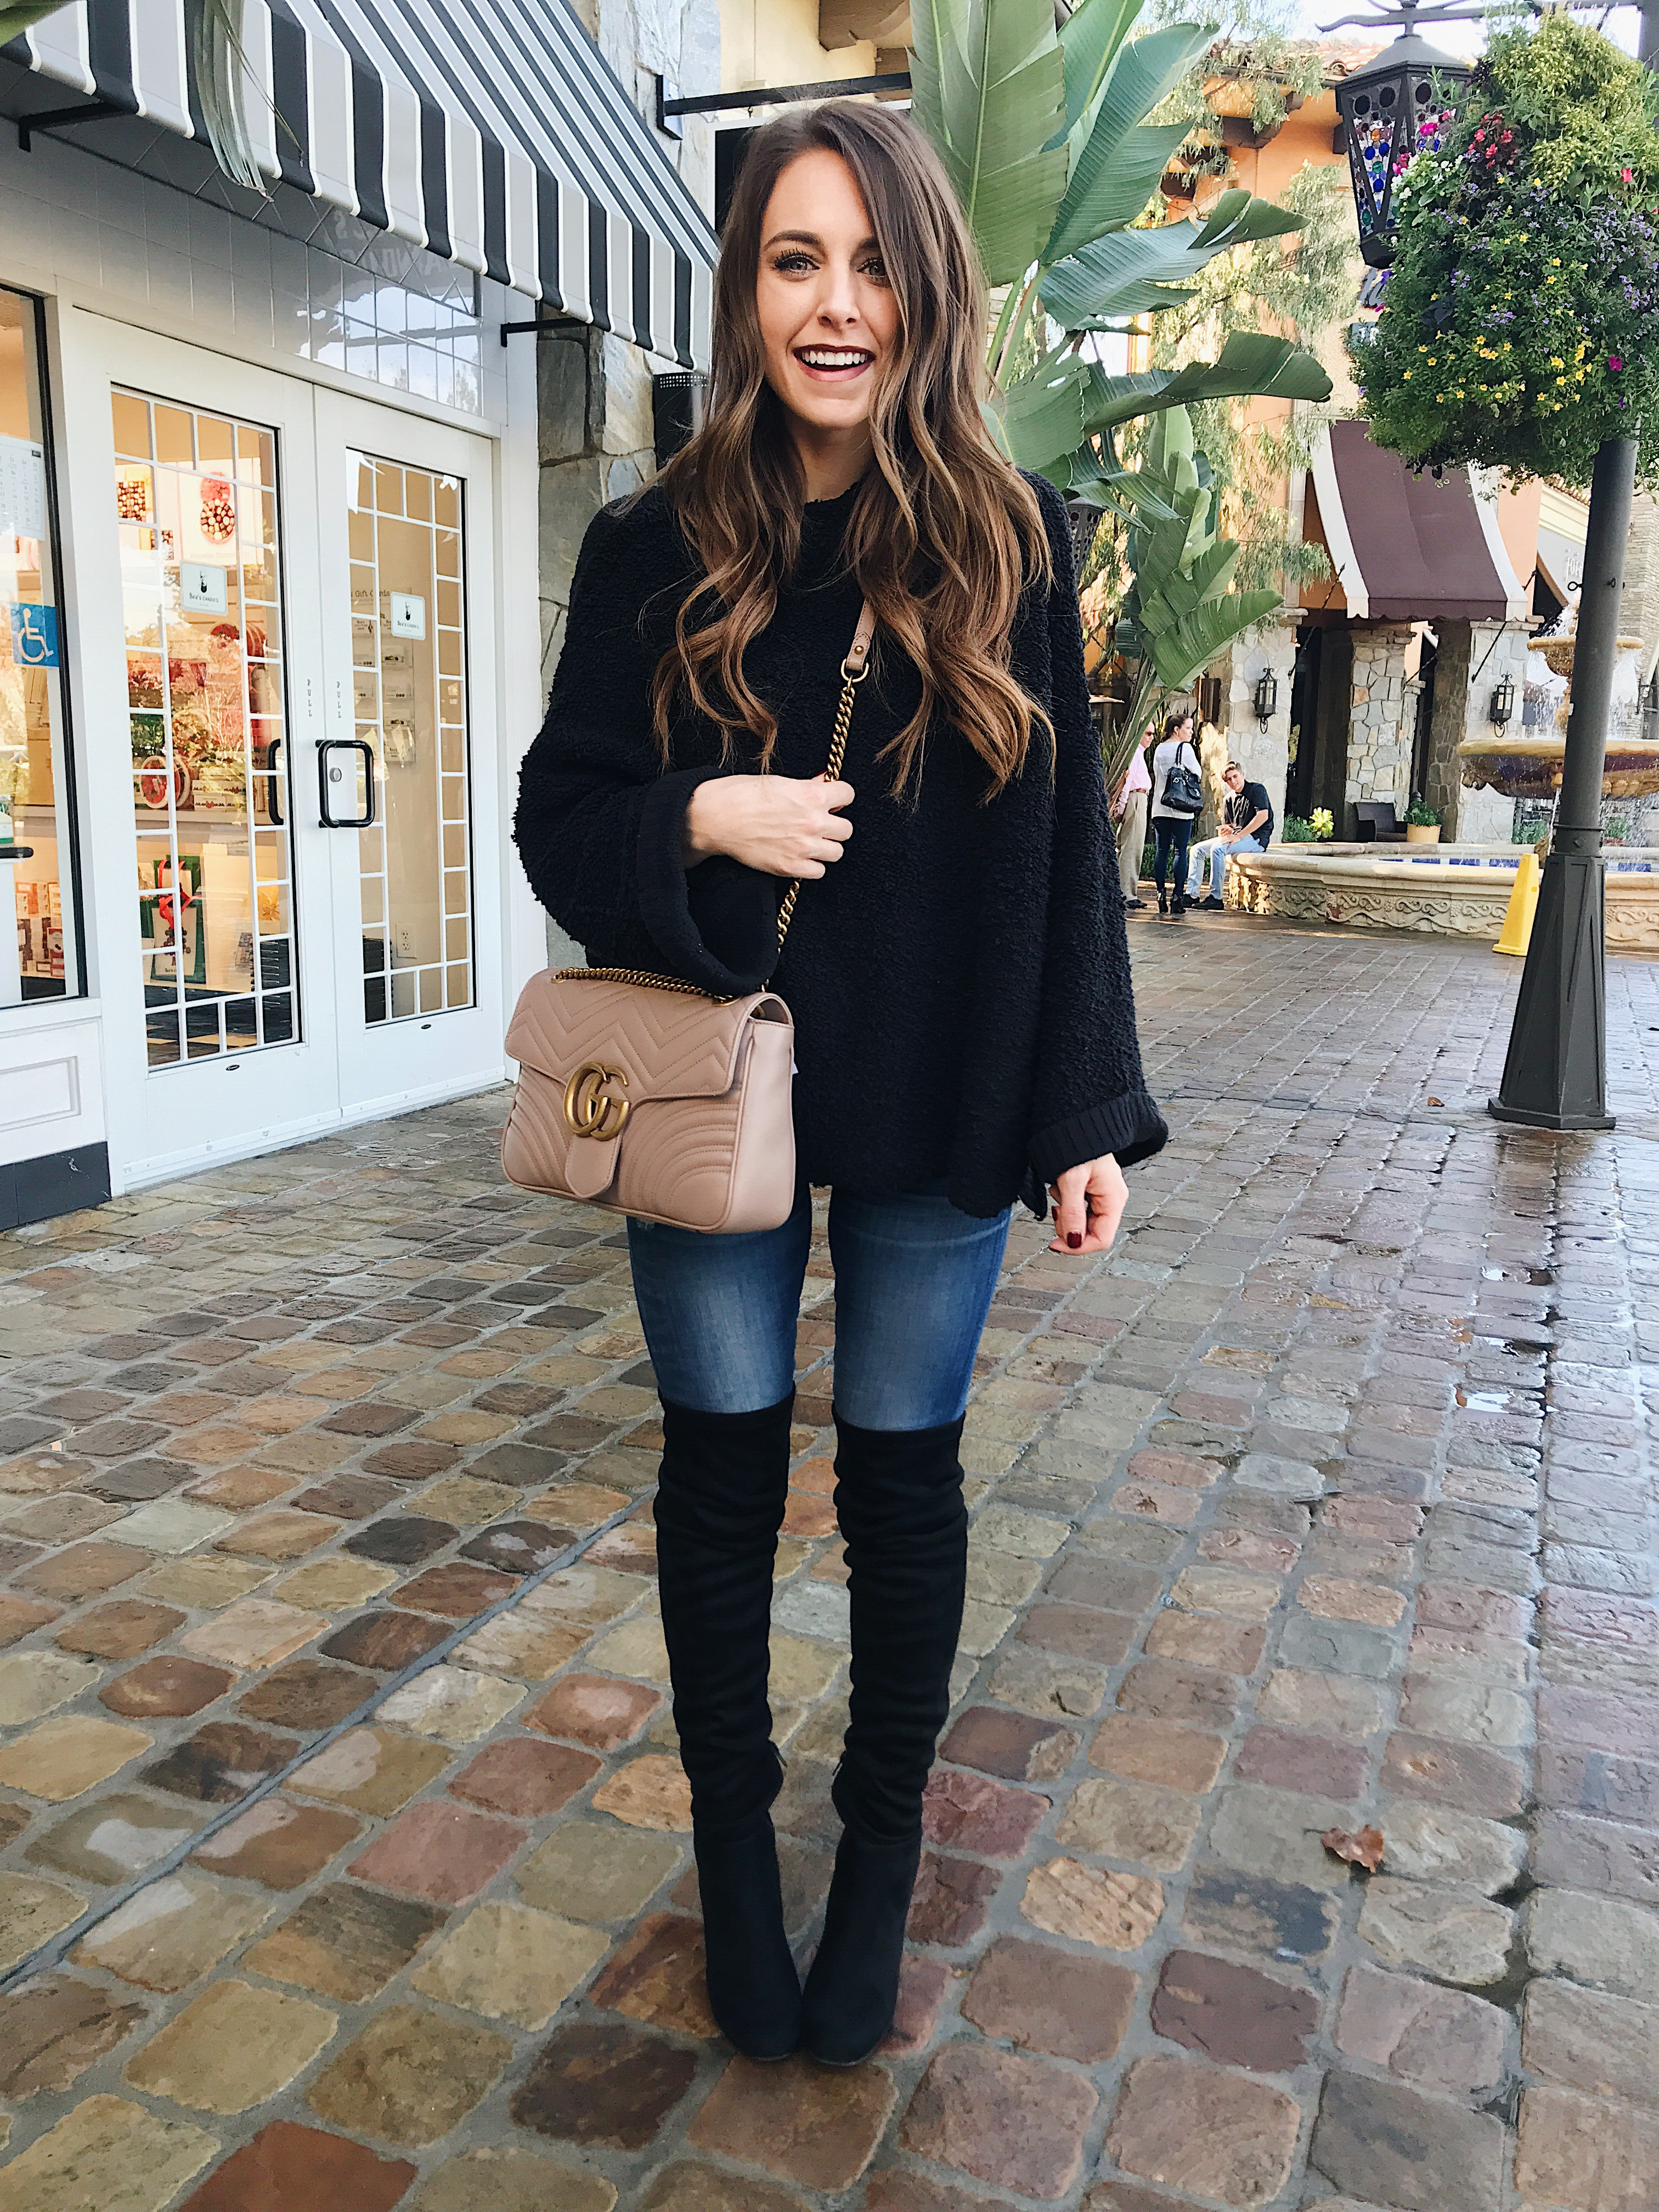 Fashion Blogger Daryl-Ann Denner shares how to wear over-the-knee boots with skirts and jeans